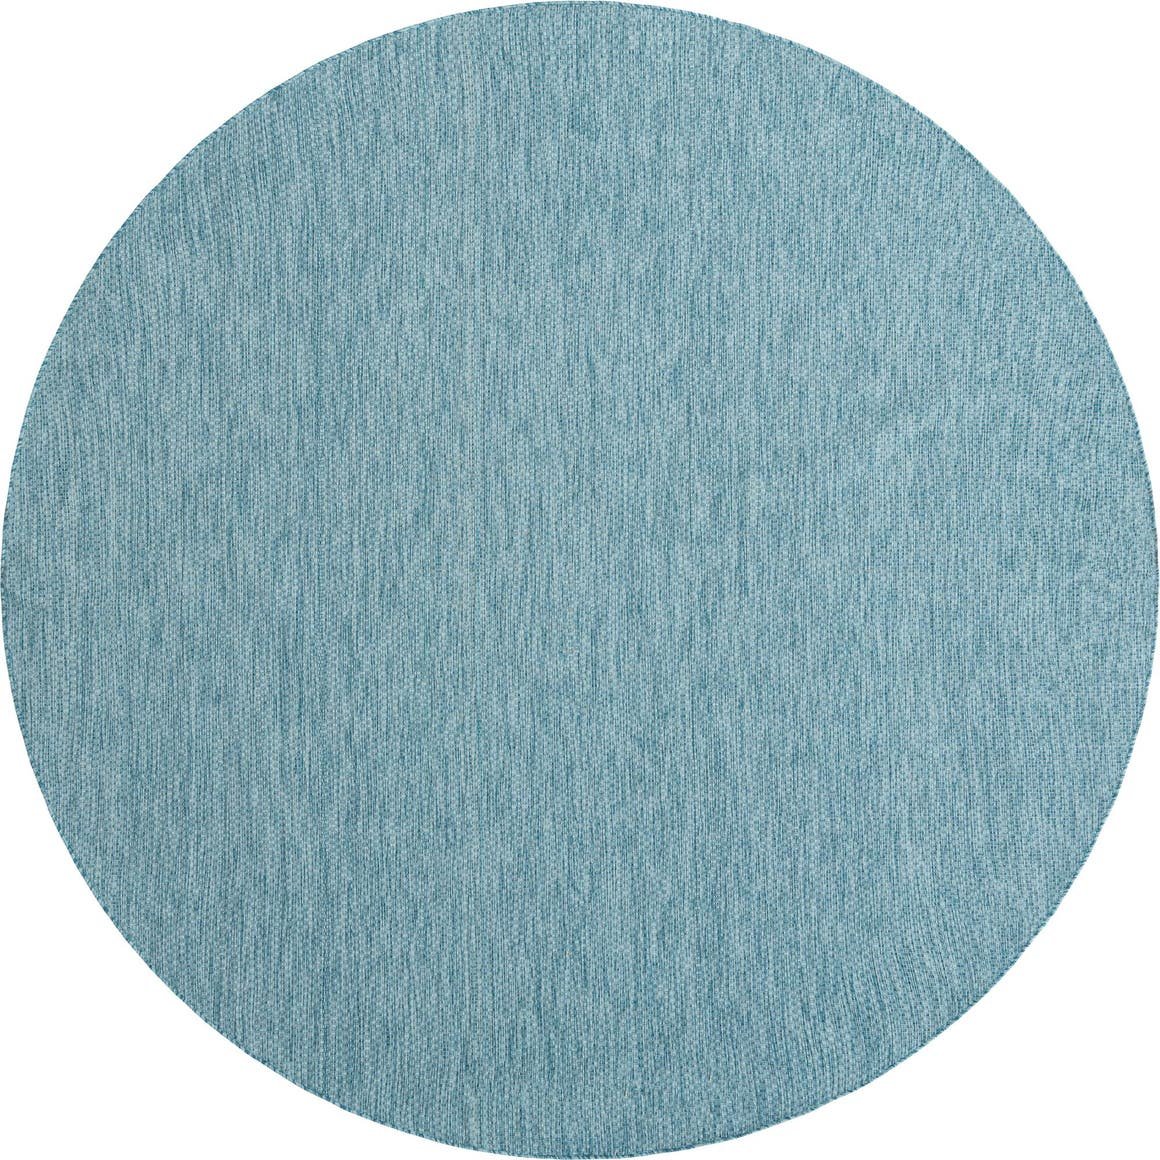 13' x 13' Outdoor Solid Round Rug main image